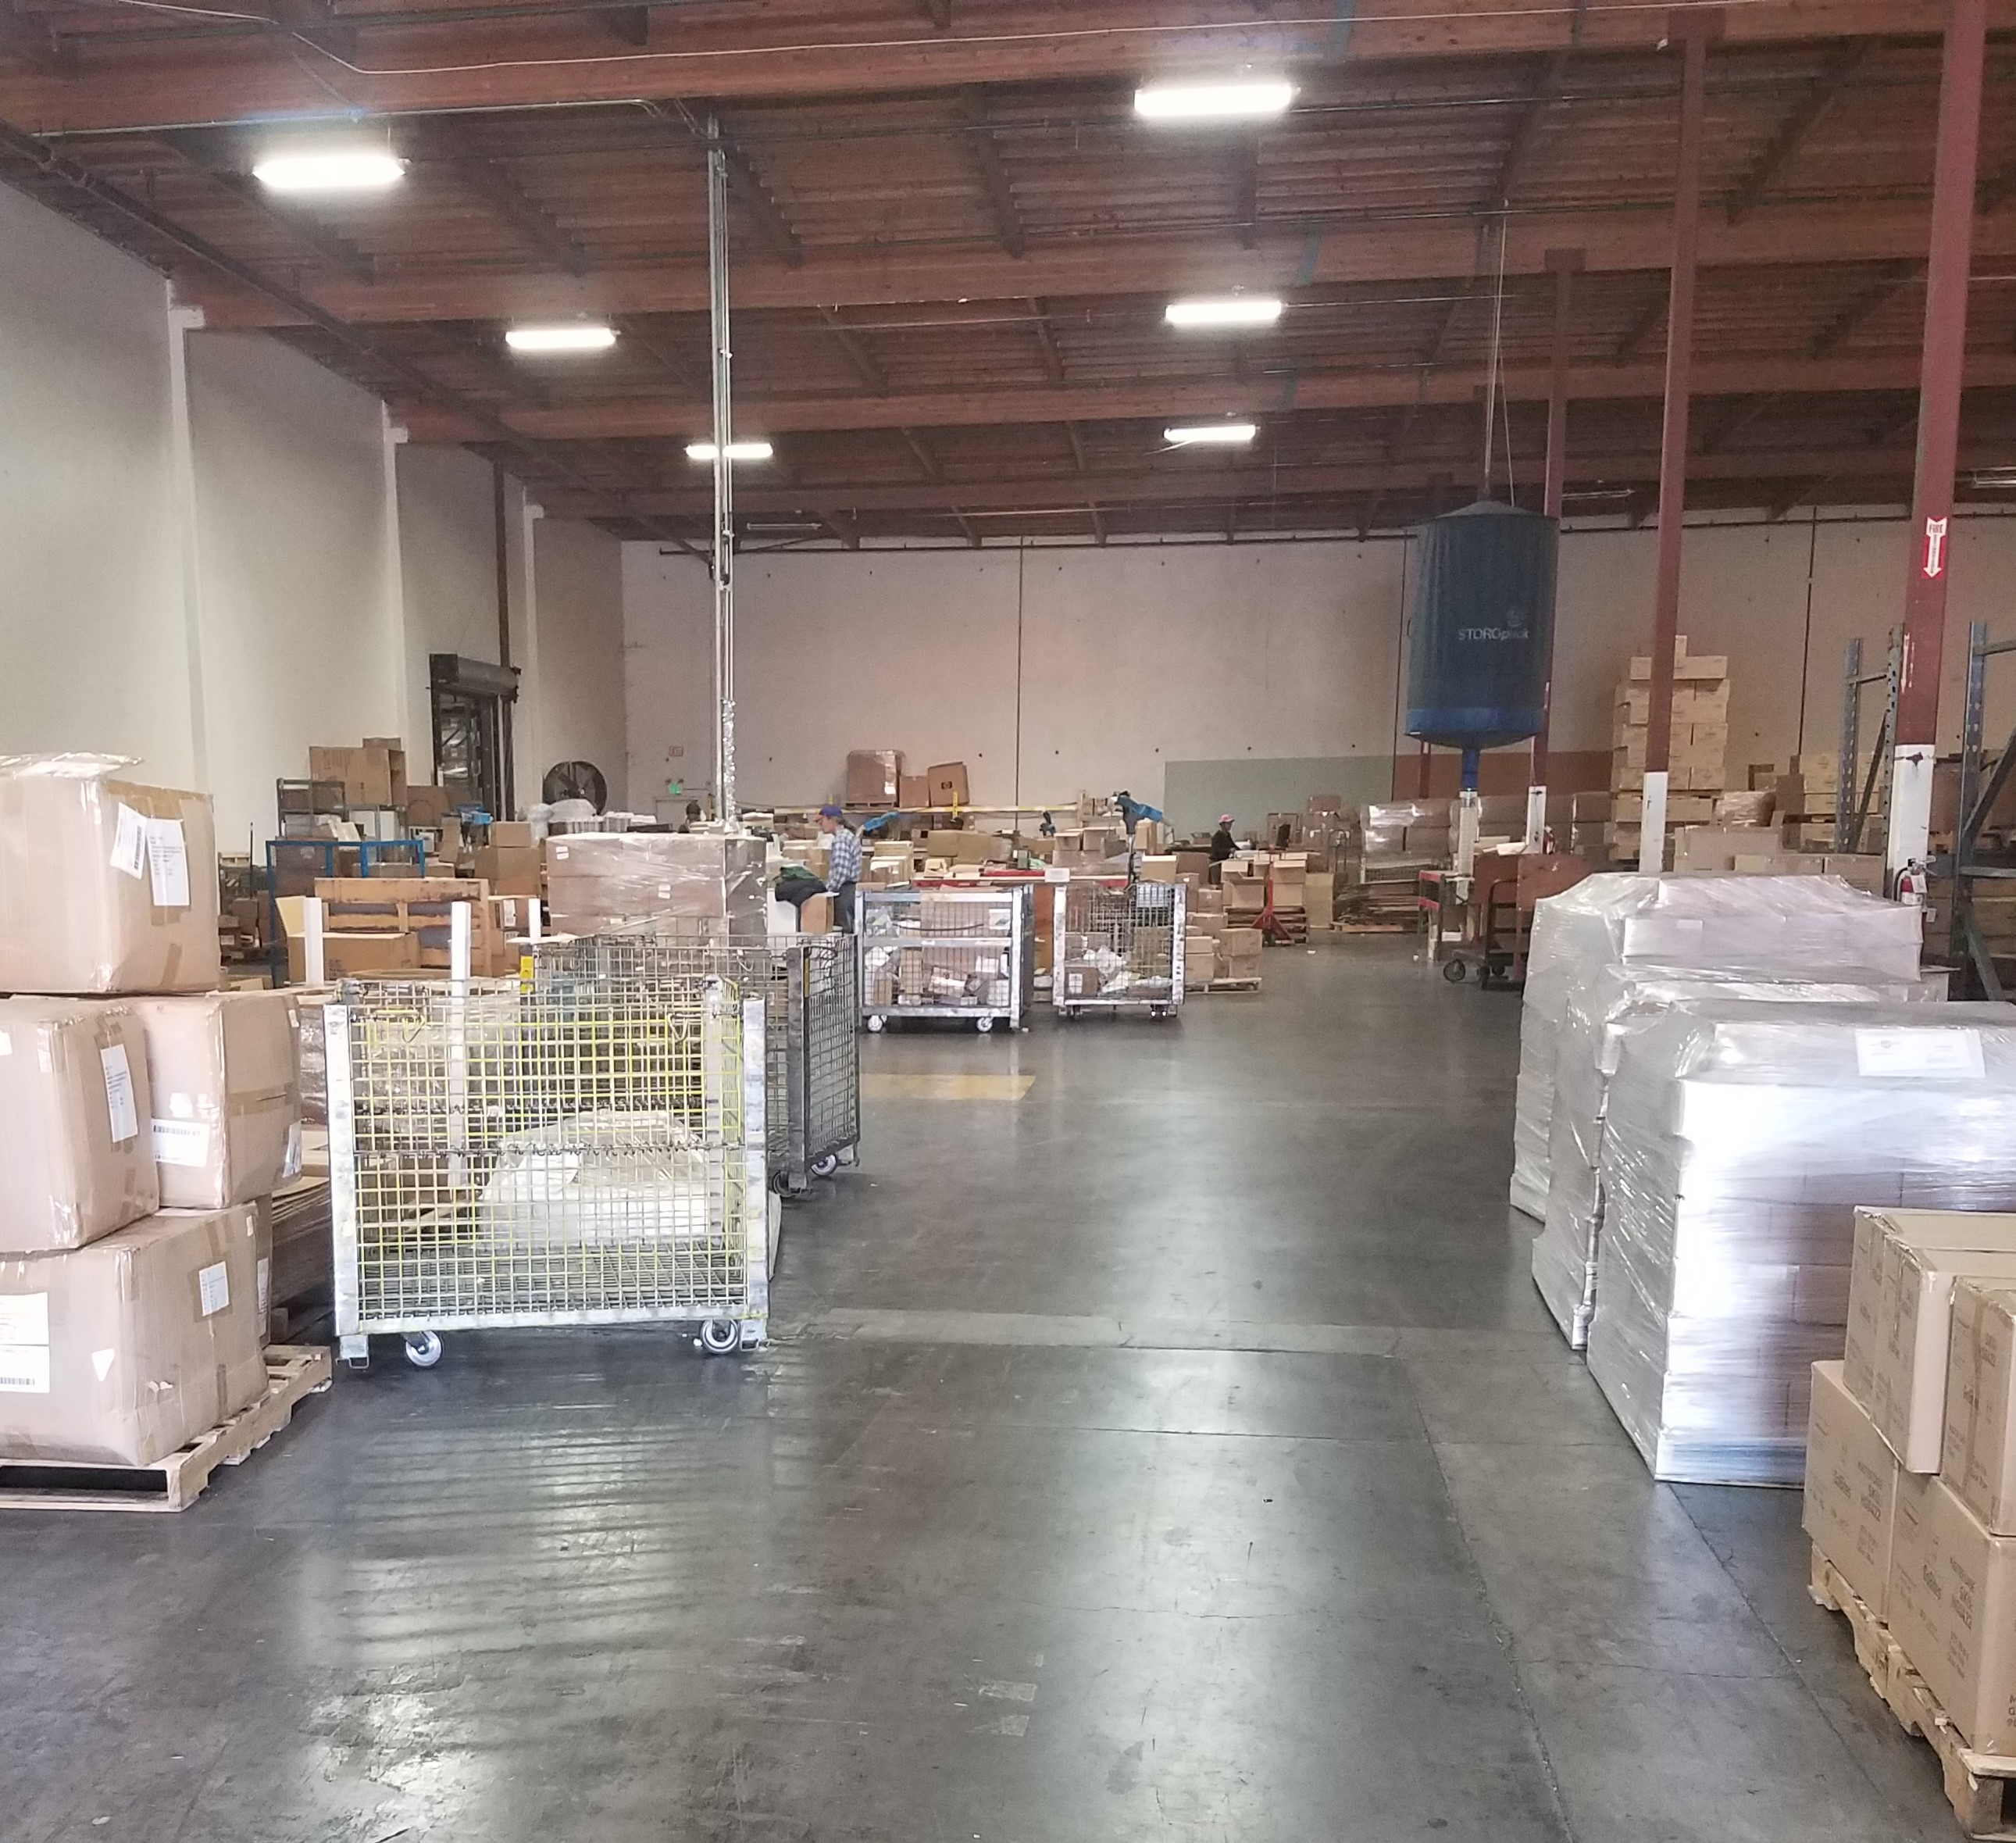 Business For Sale - Leader in 3rd Party Logistics - $1 4M Revenue!